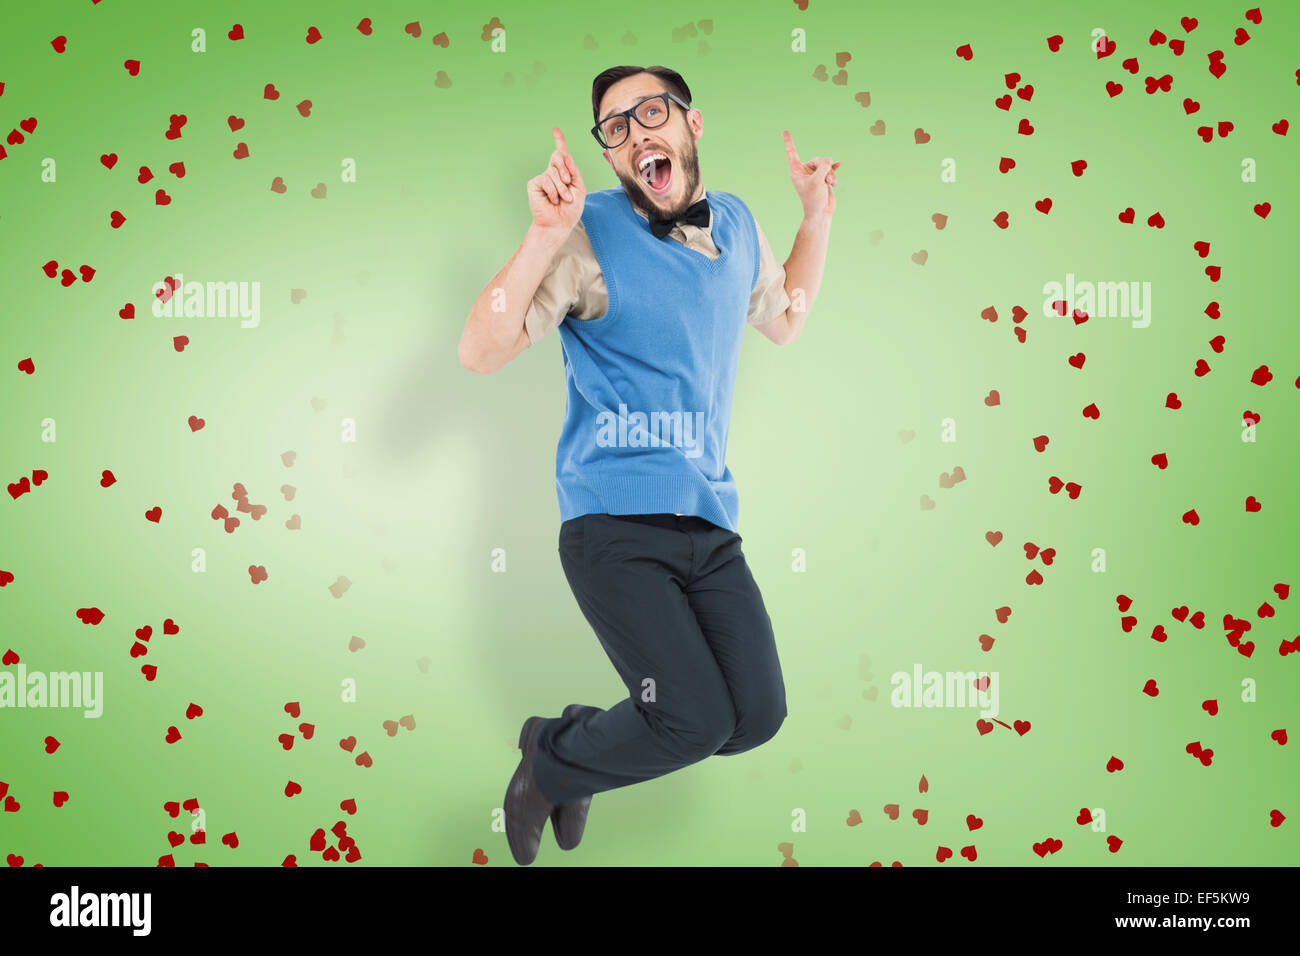 Composite image of geeky hipster jumping and smiling - Stock Image